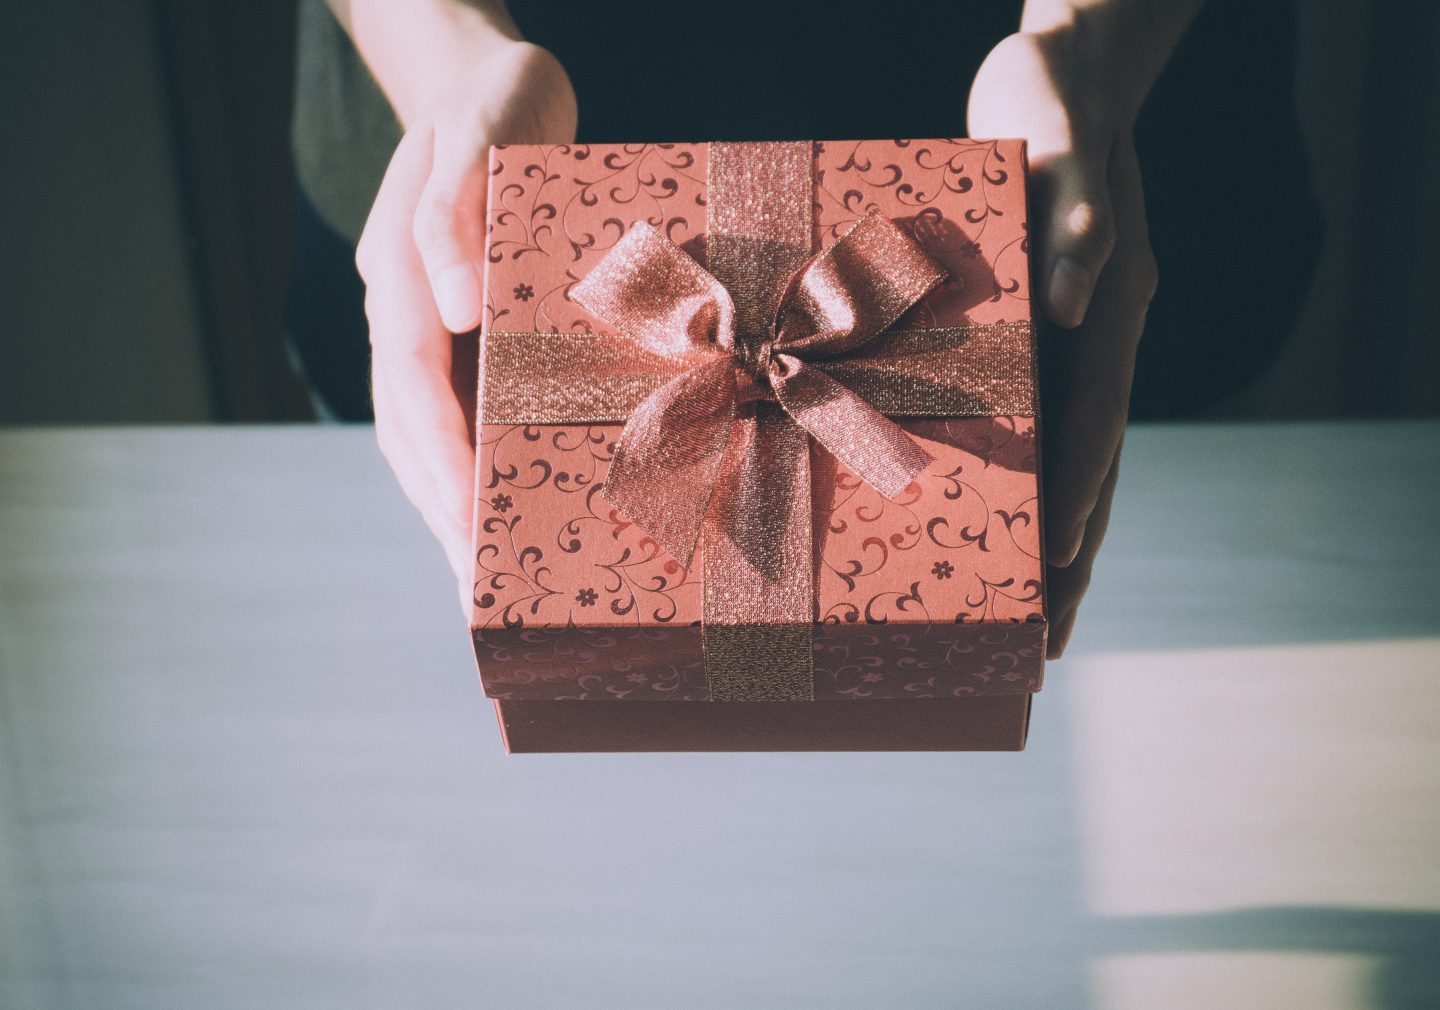 Unique gifts for those unique loved ones